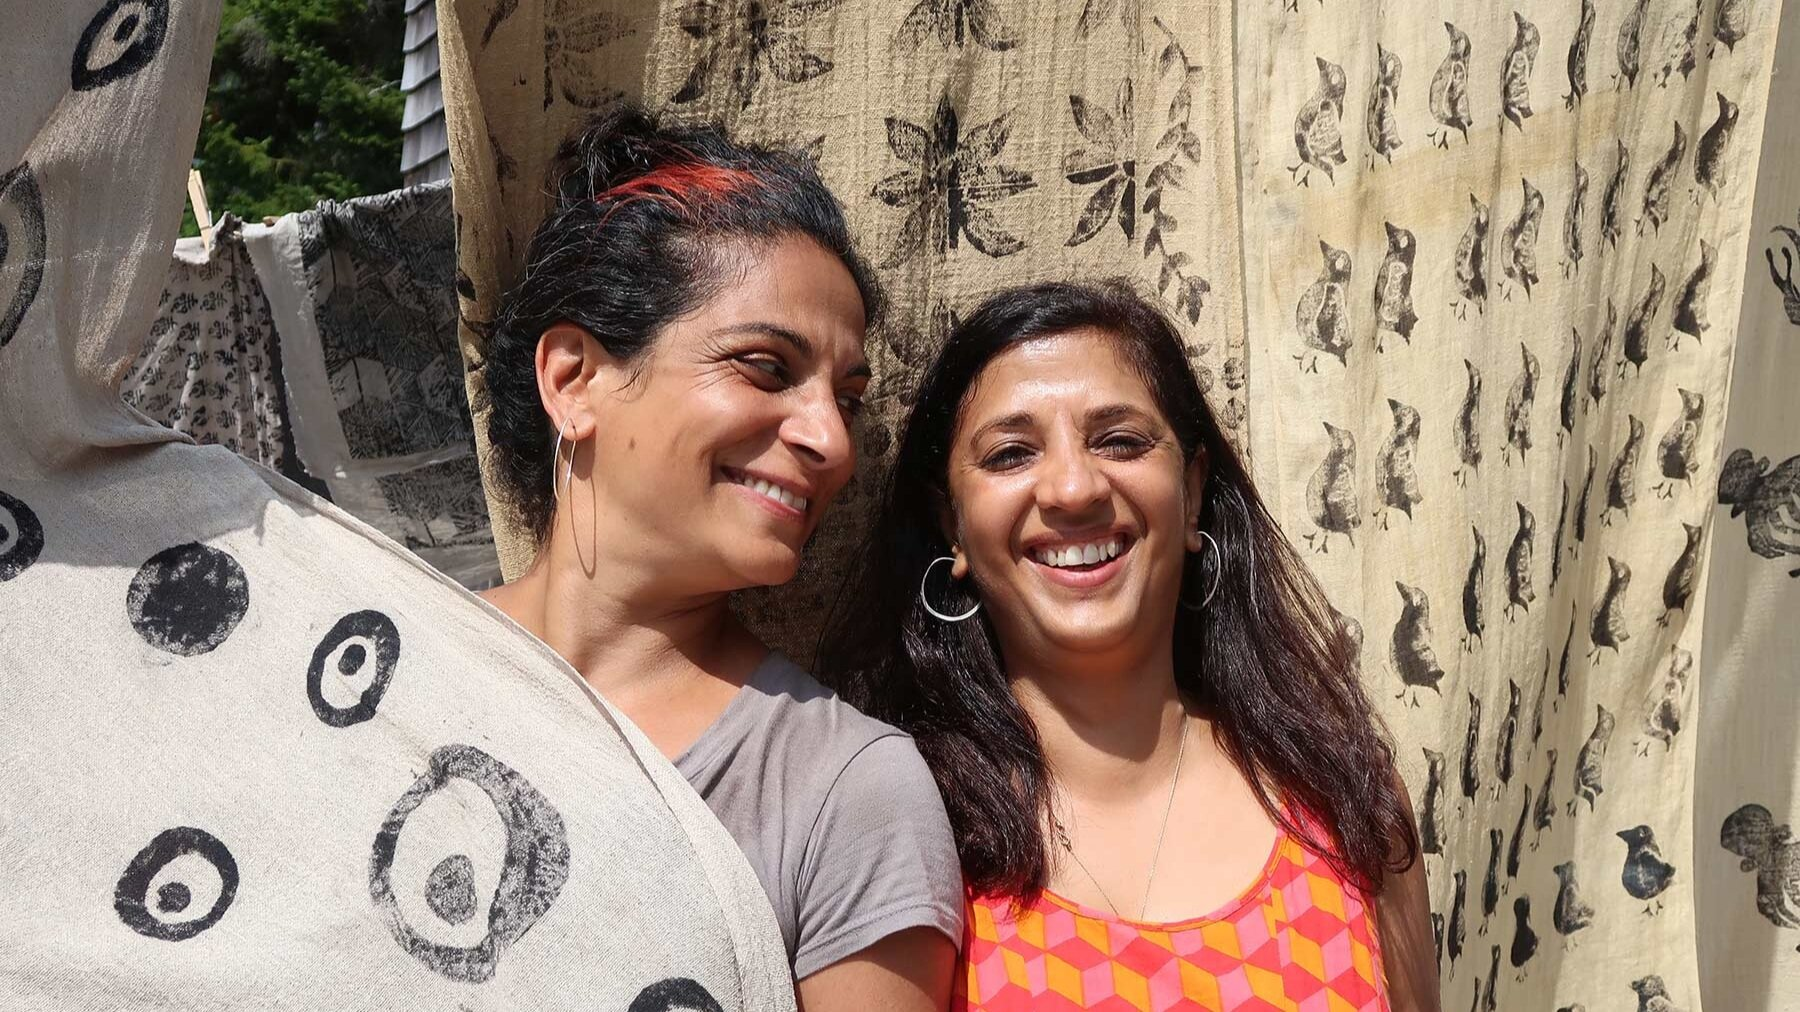 Two women smile in front of blockprinted textiles